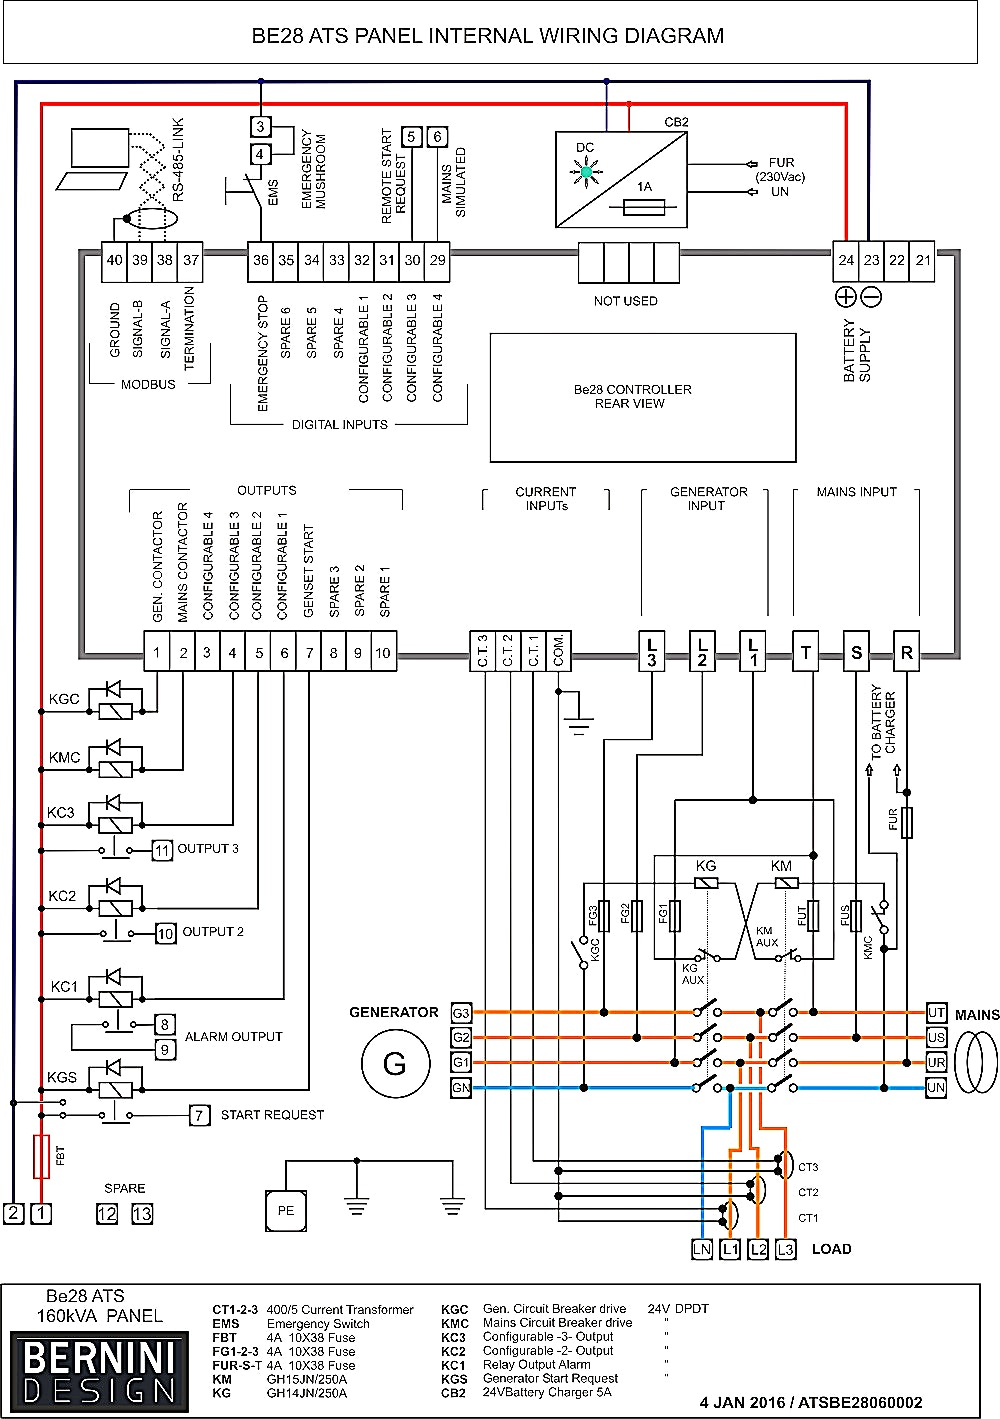 transfer switch wiring diagram gallery. Black Bedroom Furniture Sets. Home Design Ideas